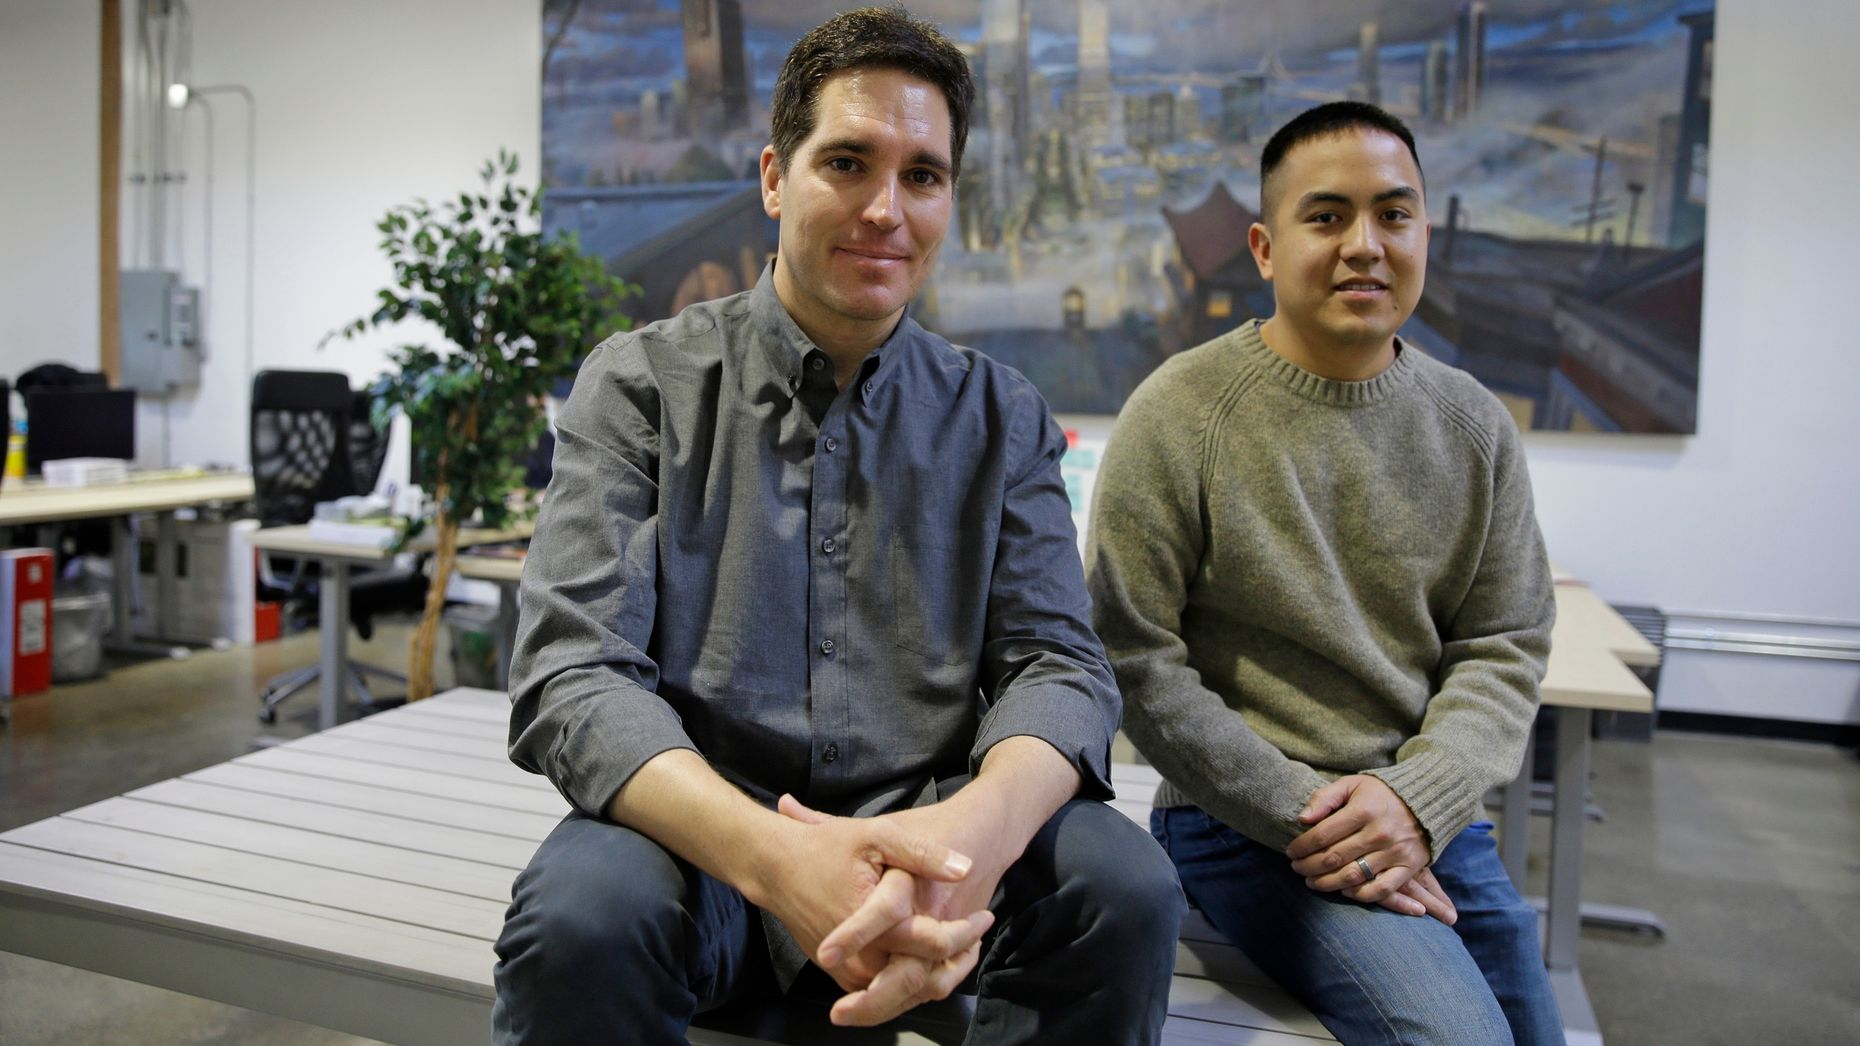 Jason Kilar, left, and his Vessel co-founder Richard Tom. Photo by AP.